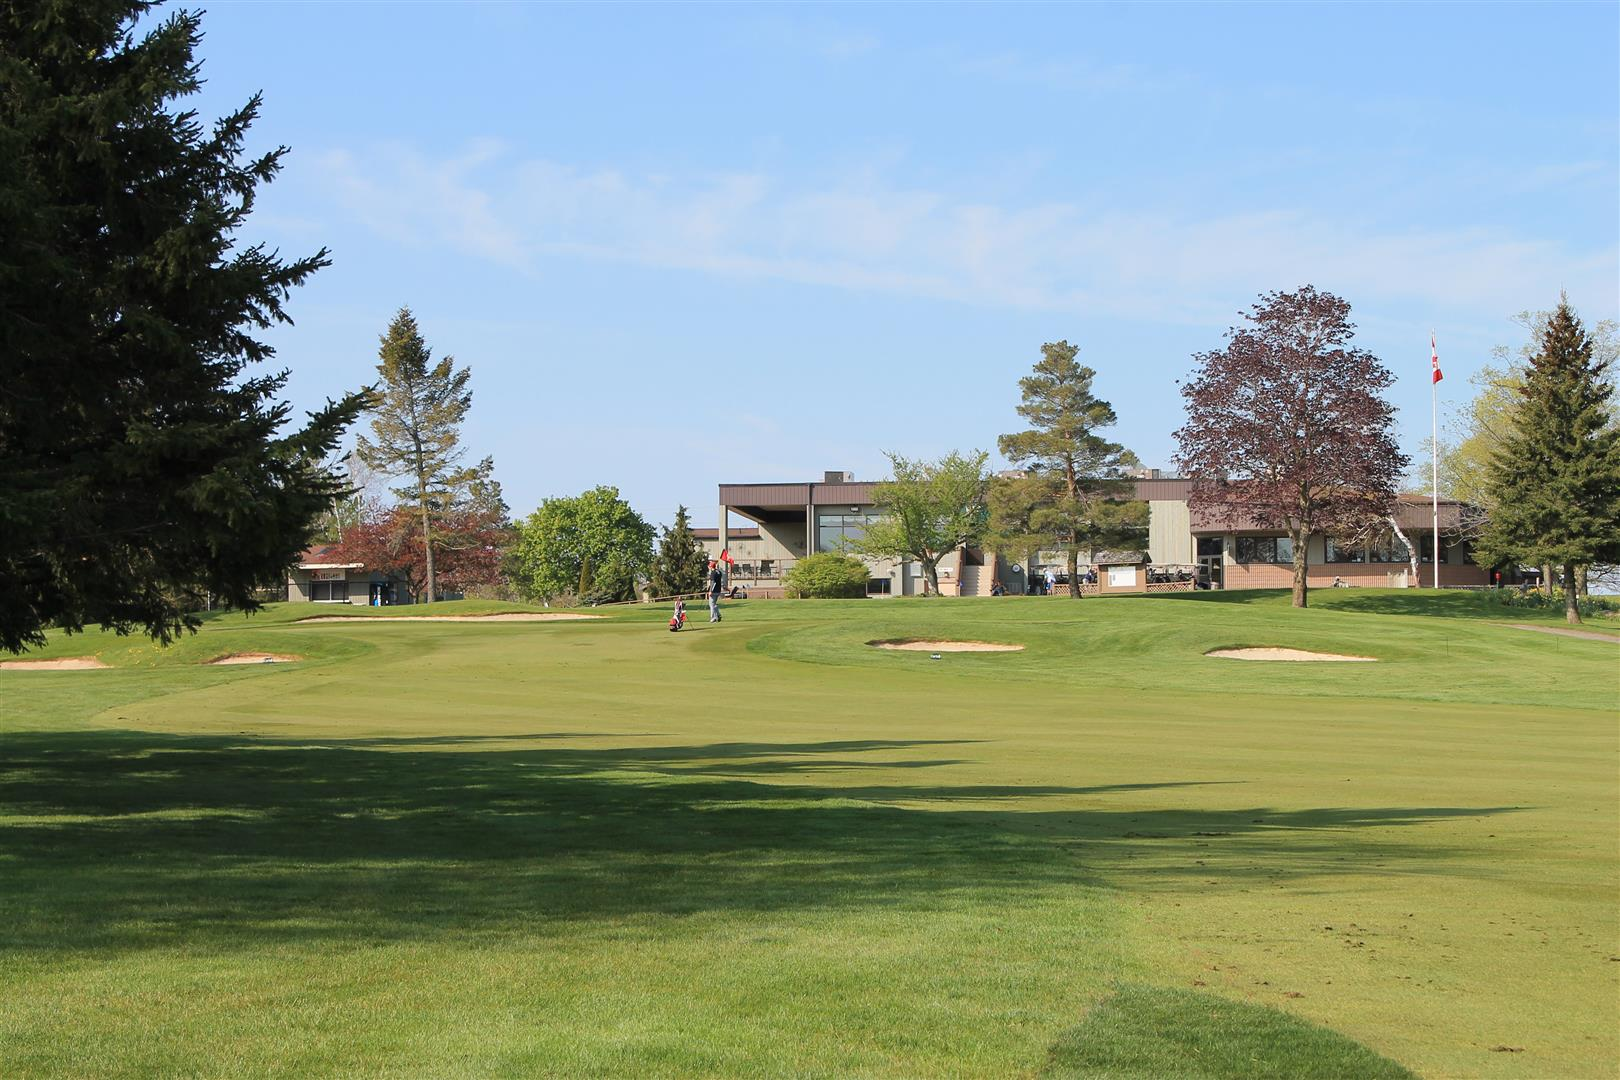 9th hole from the 100 yard mark Victoria Park East Golf Club Guelph